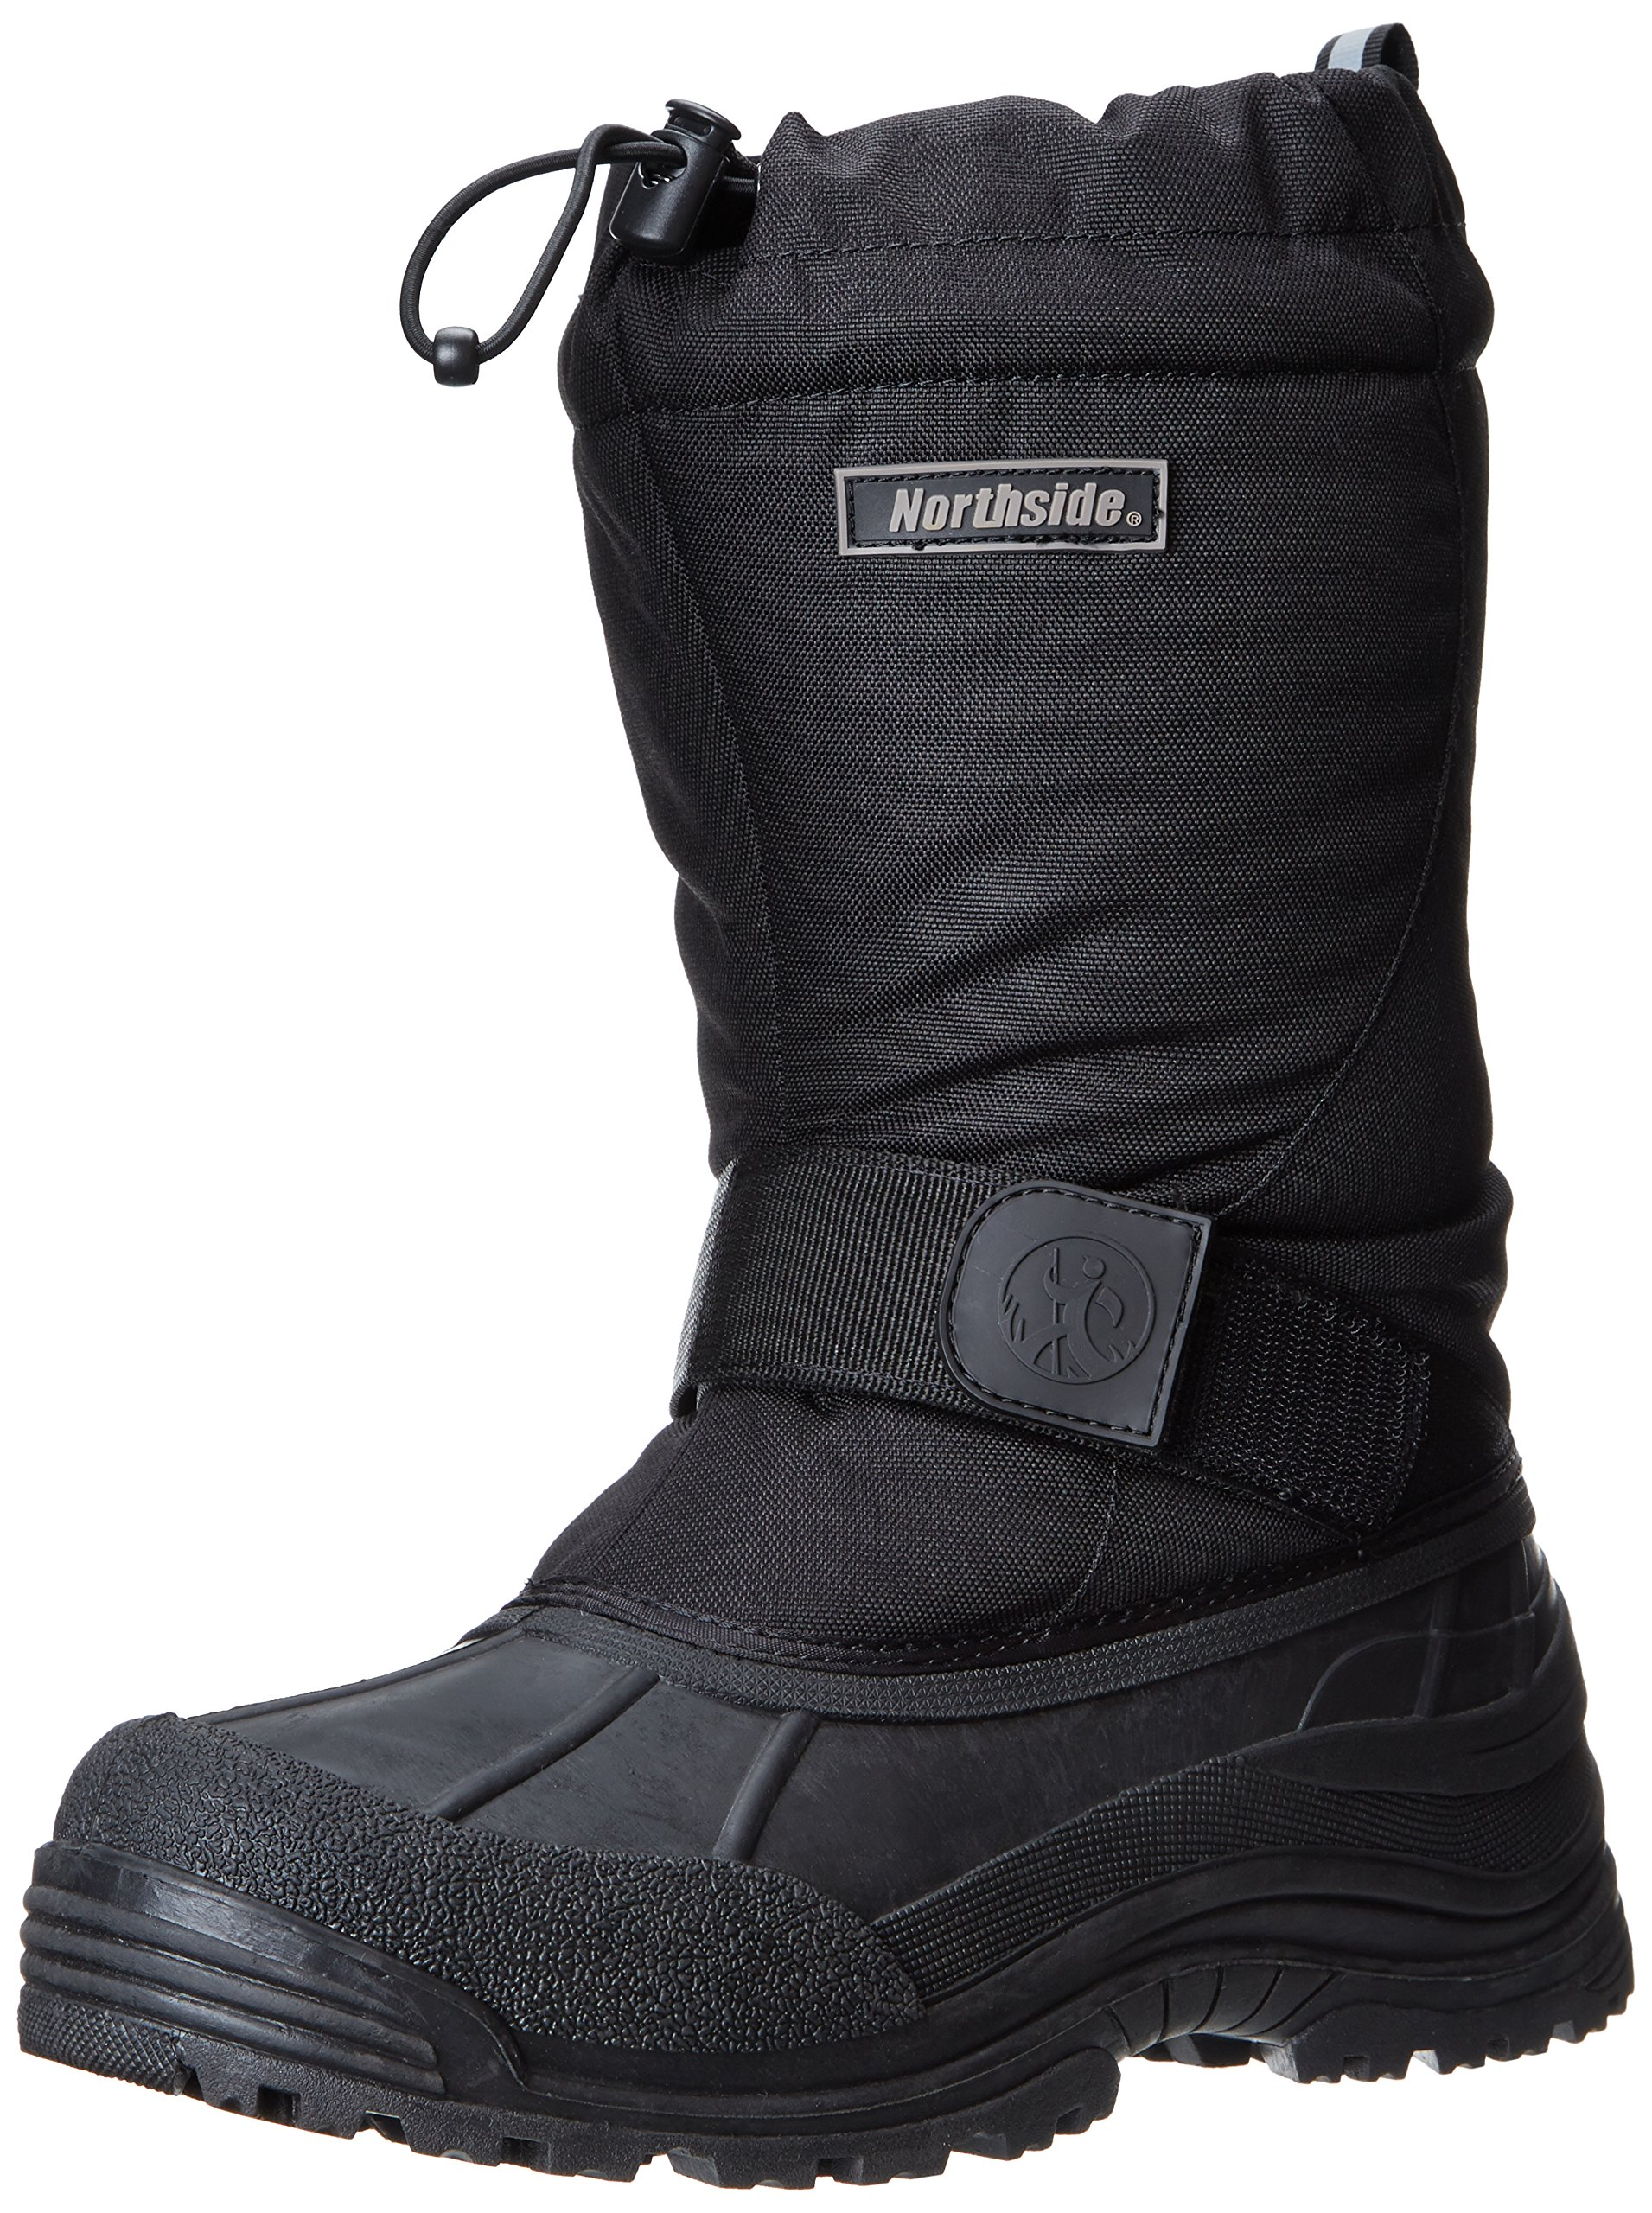 Northside Men's Alberta II Combination Cold Weather Boot